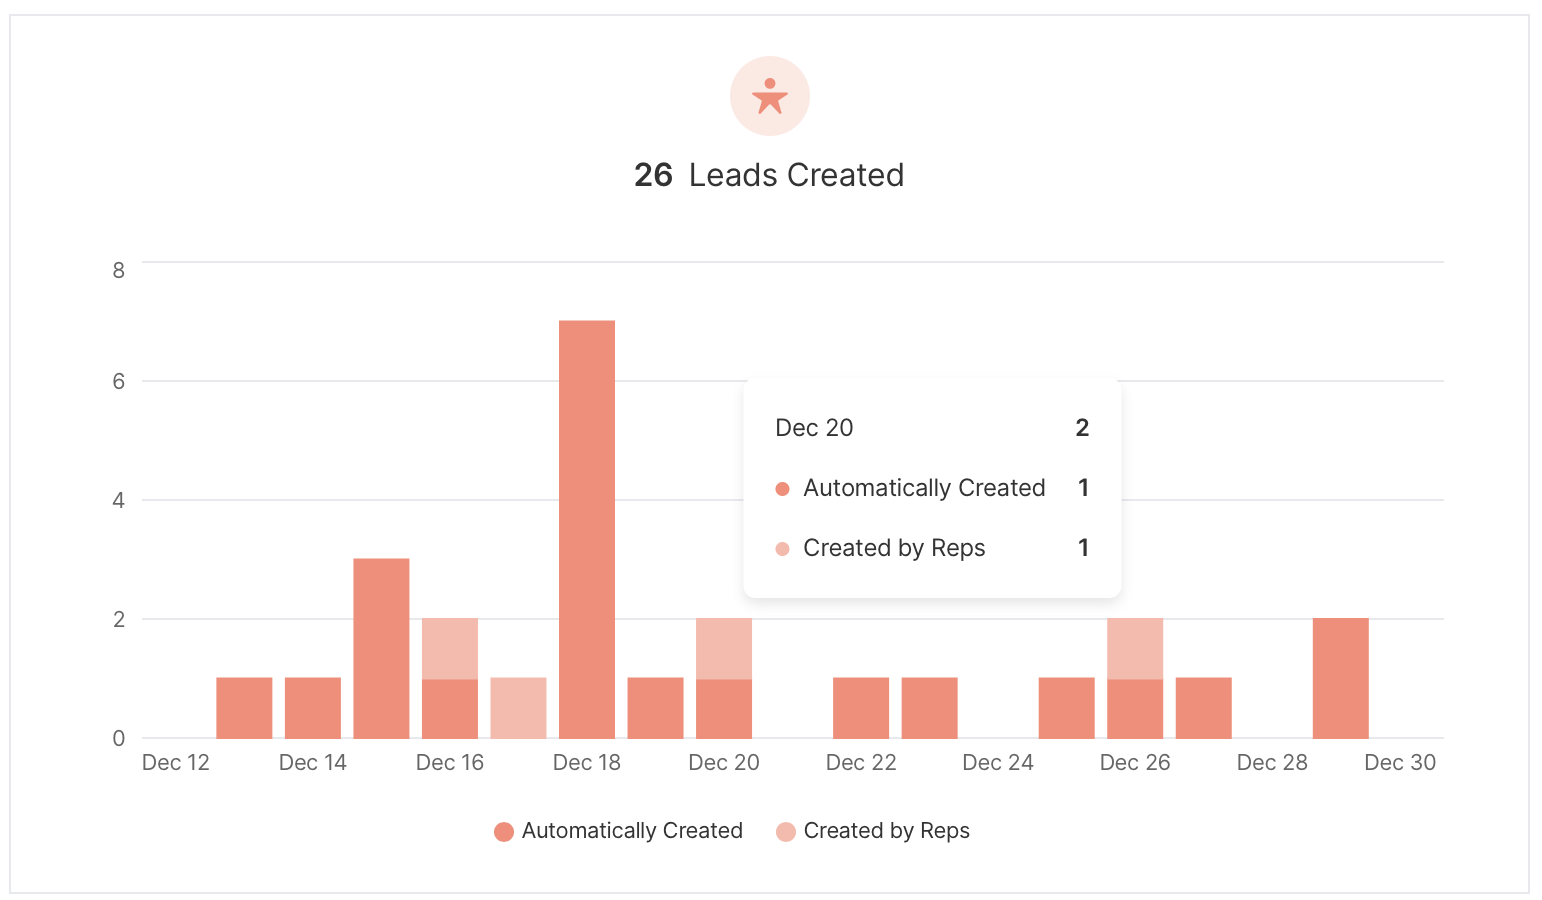 Bar chart displaying the total Leads created, broken down between automatic creations and created by reps